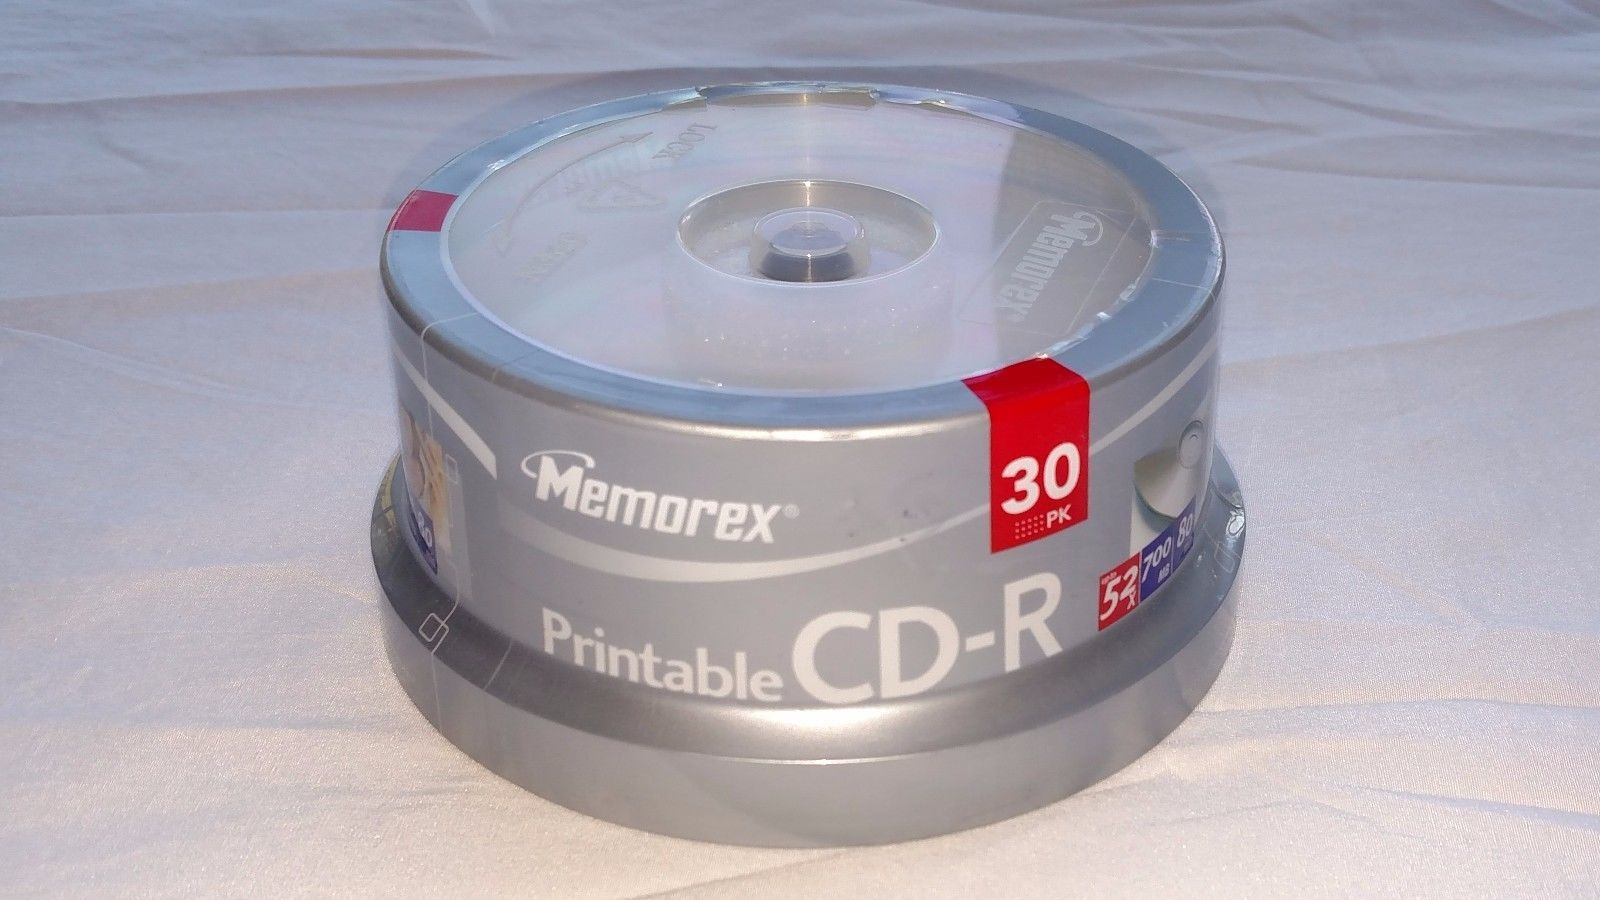 image about Printable Cds titled Refreshing Memorex 52X Printable 700MB CD-R and 29 equivalent merchandise